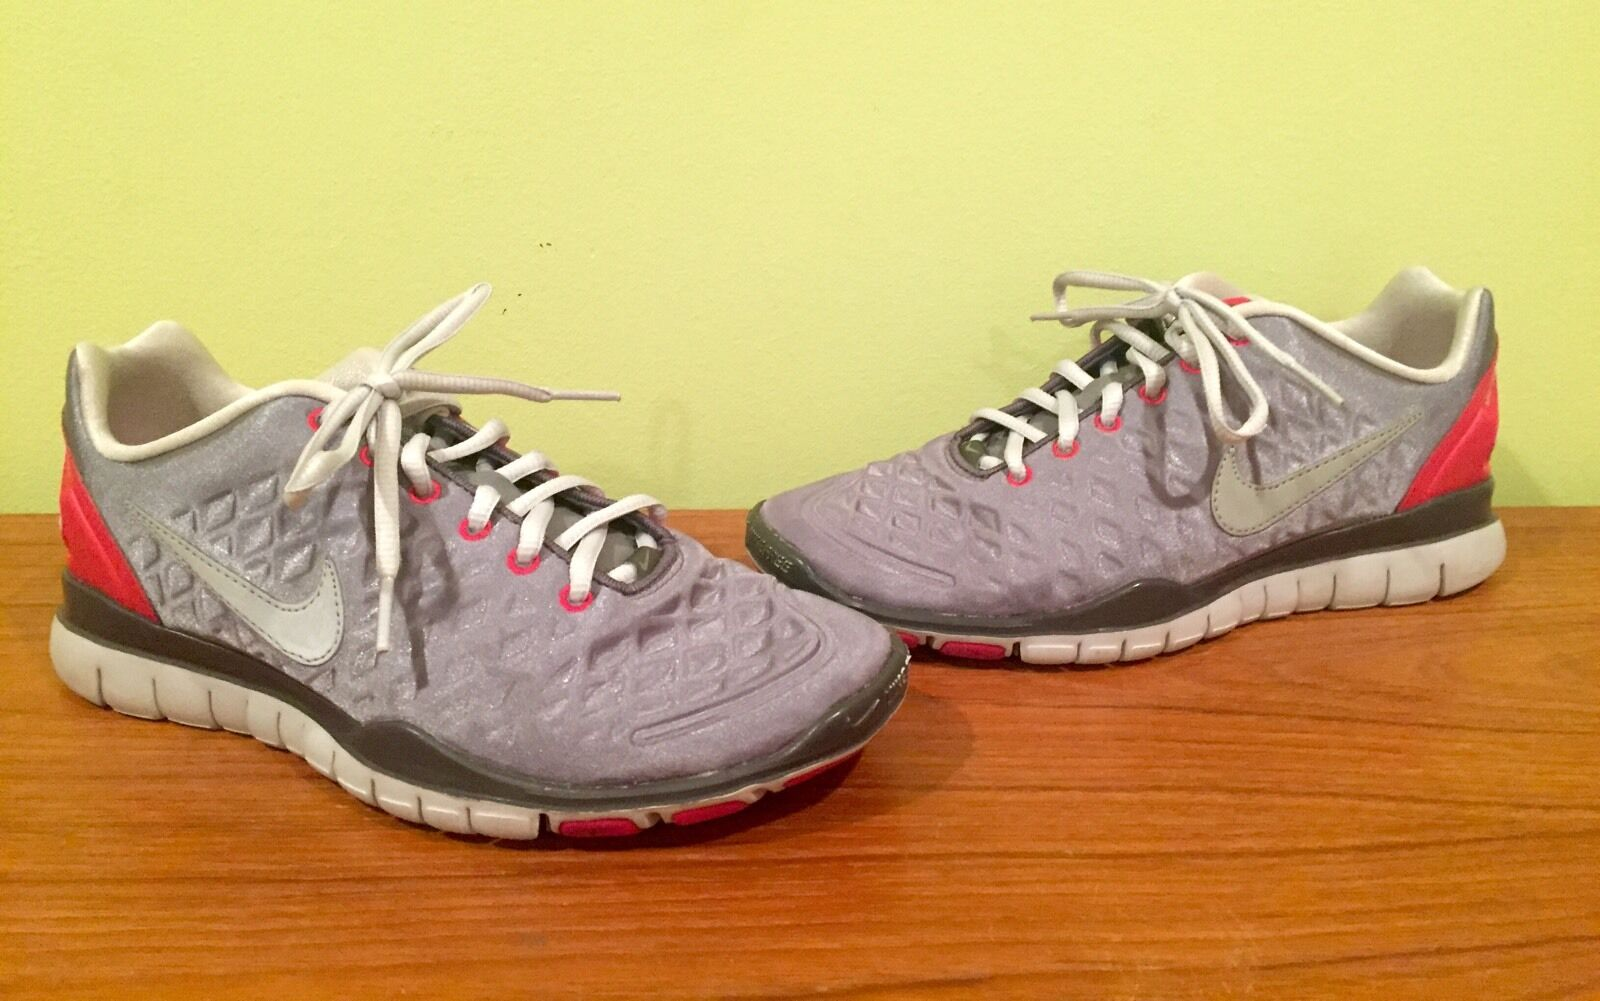 Womens Nike Free Training Fit Multi-Color Athletic Shoes Size 8.5